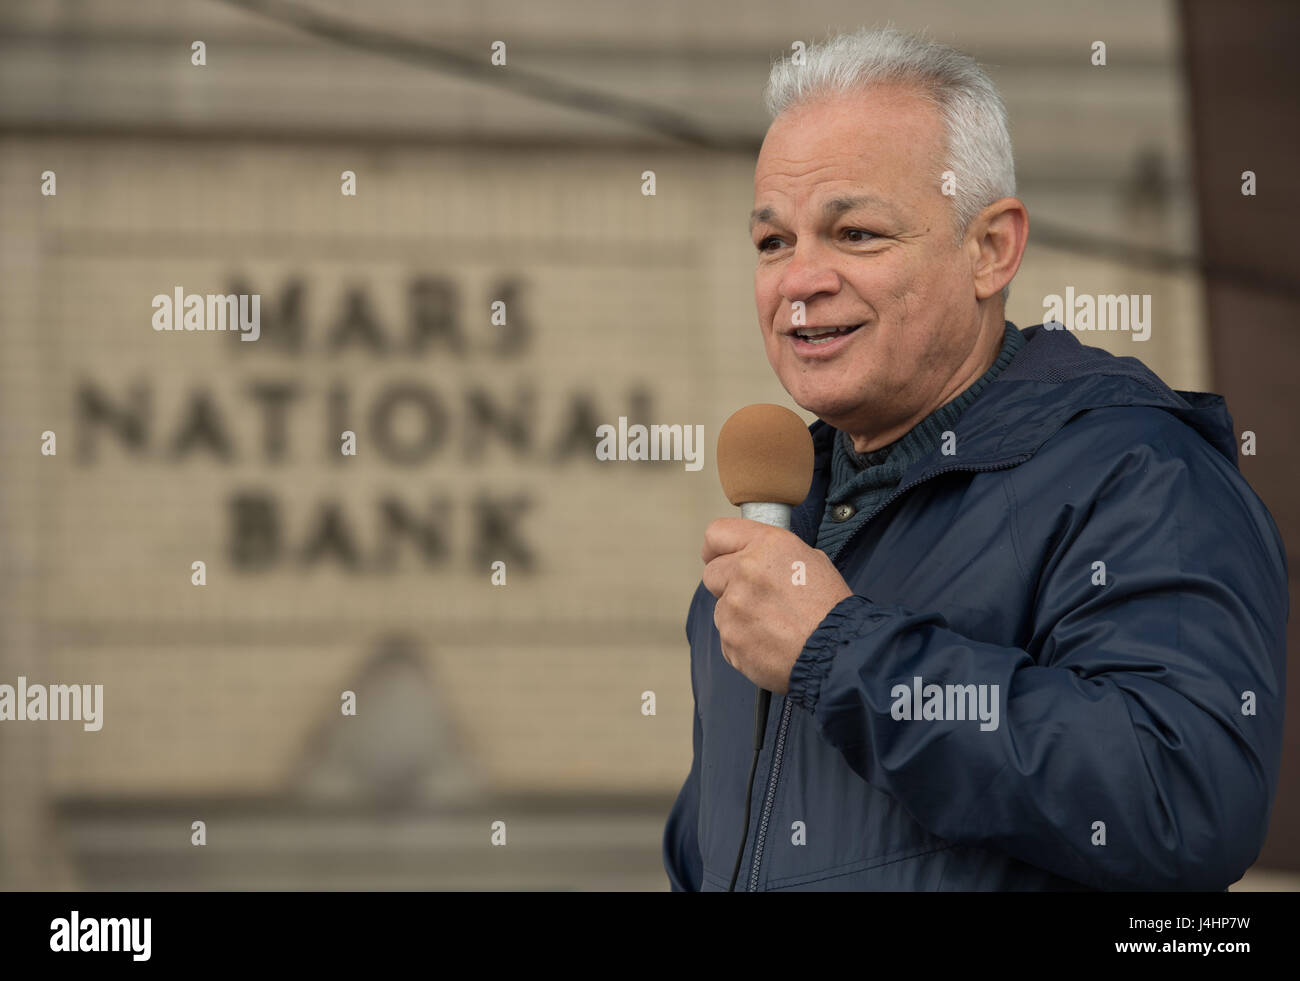 NASA Acting Chief Technologist Douglas Terrier speaks during the Mars New Year STEM celebration May 6, 2017 in Mars, - Stock Image